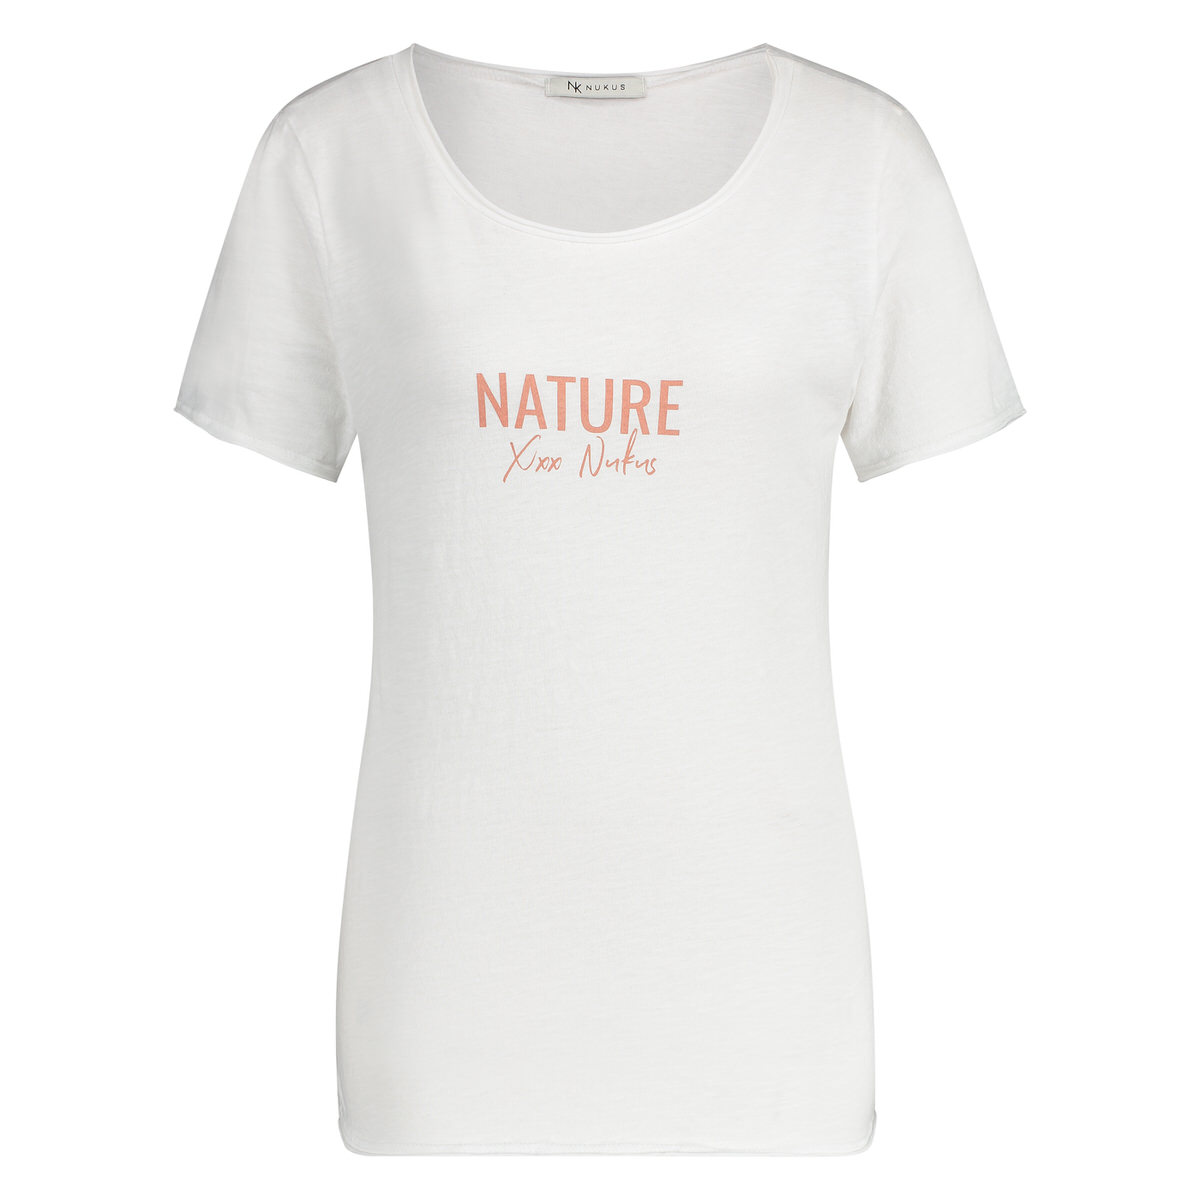 Nature T-shirt - Frizzy melon